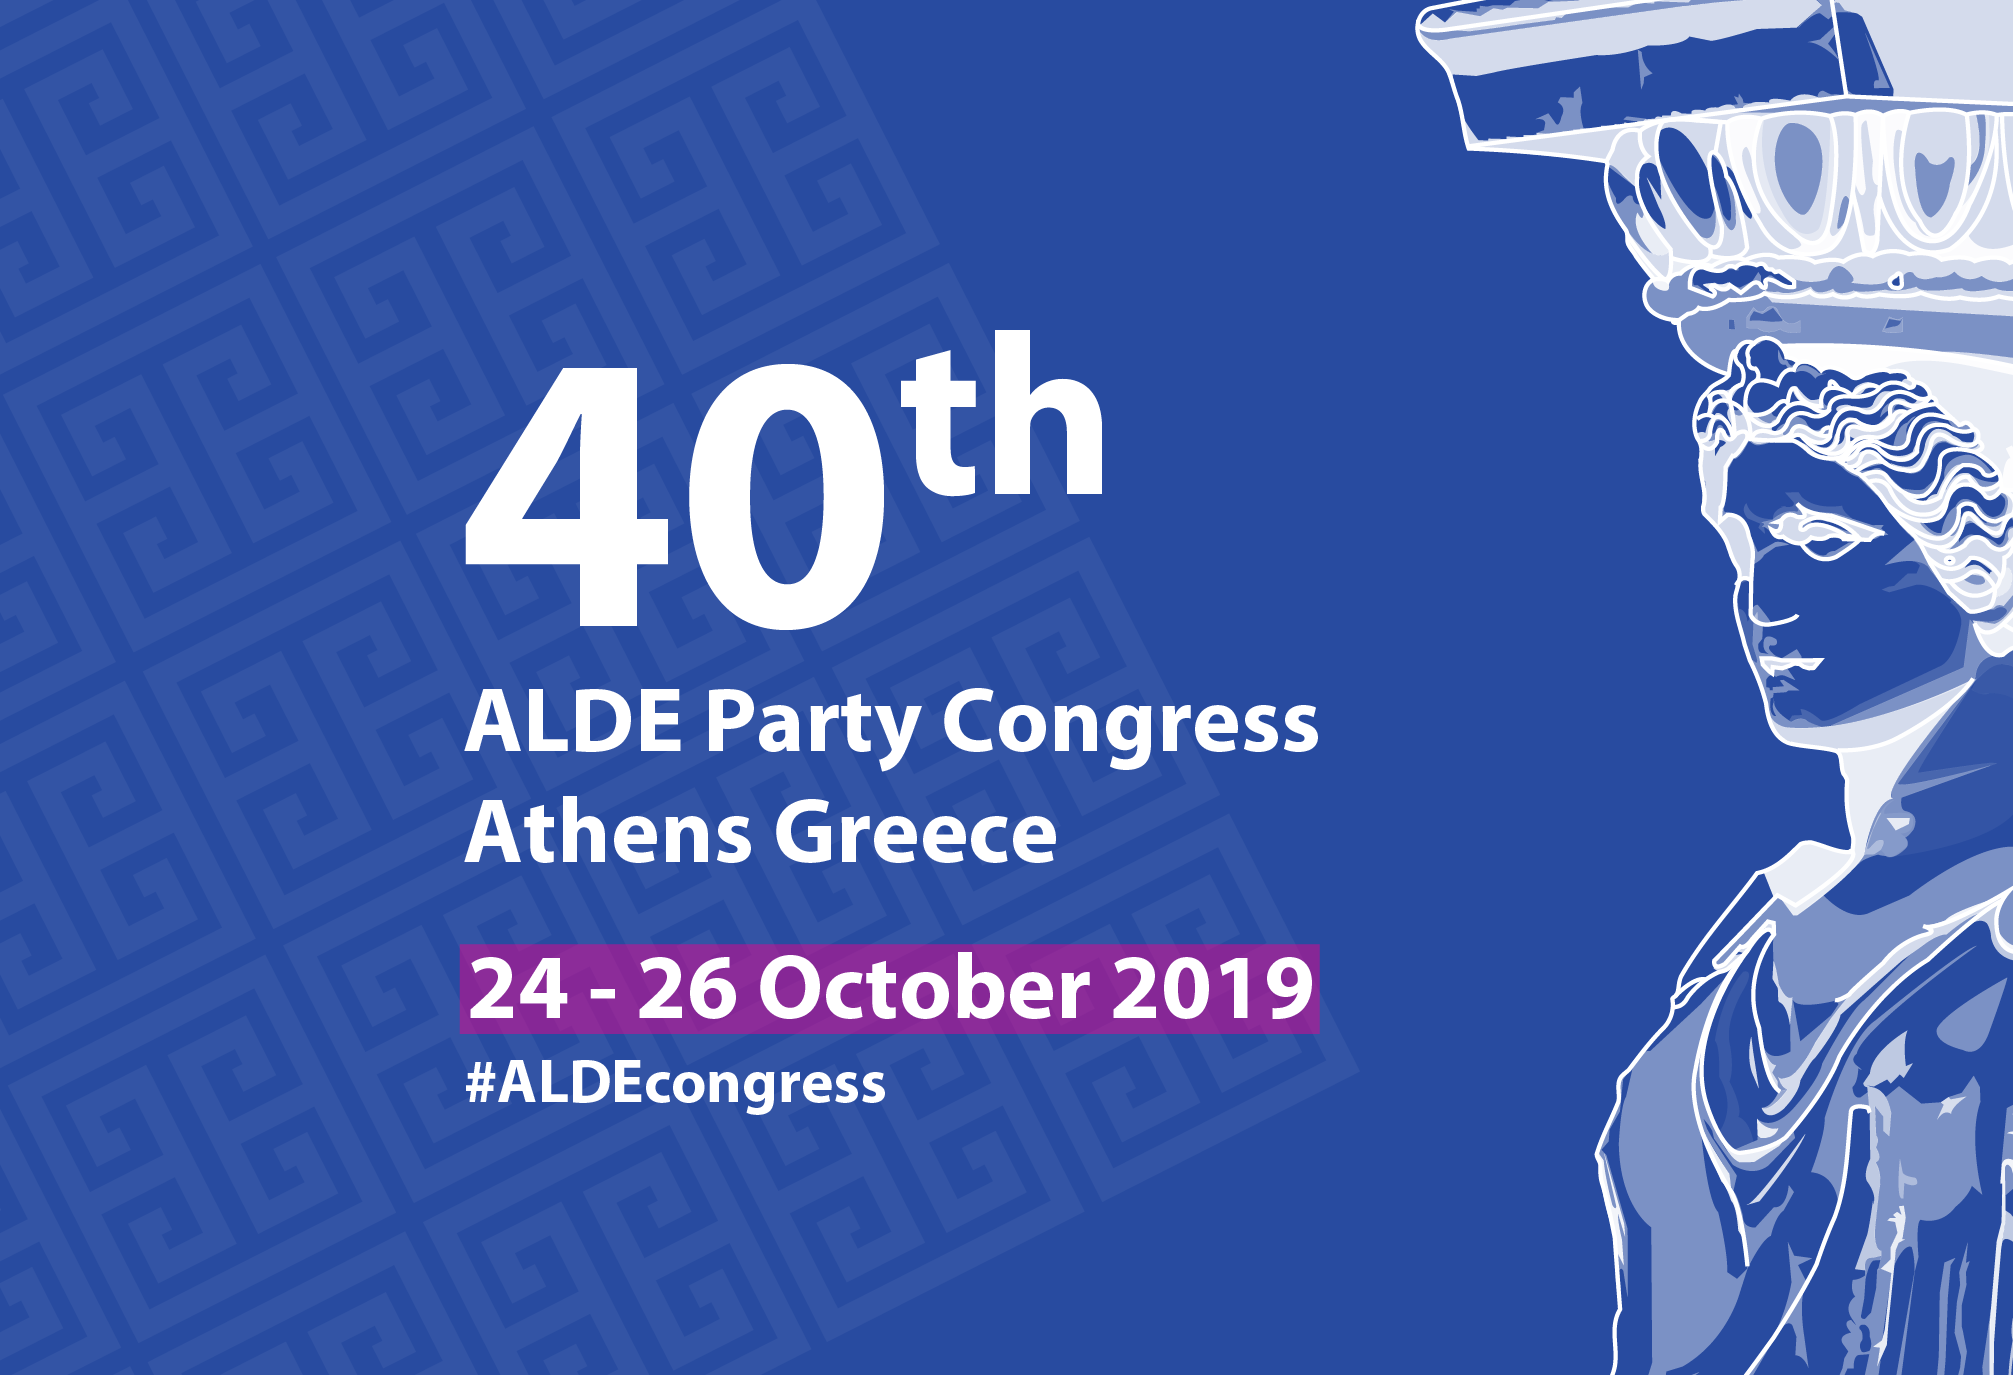 ALDE Congress to take place 24 - 26 October 2019 in Athens, Greece